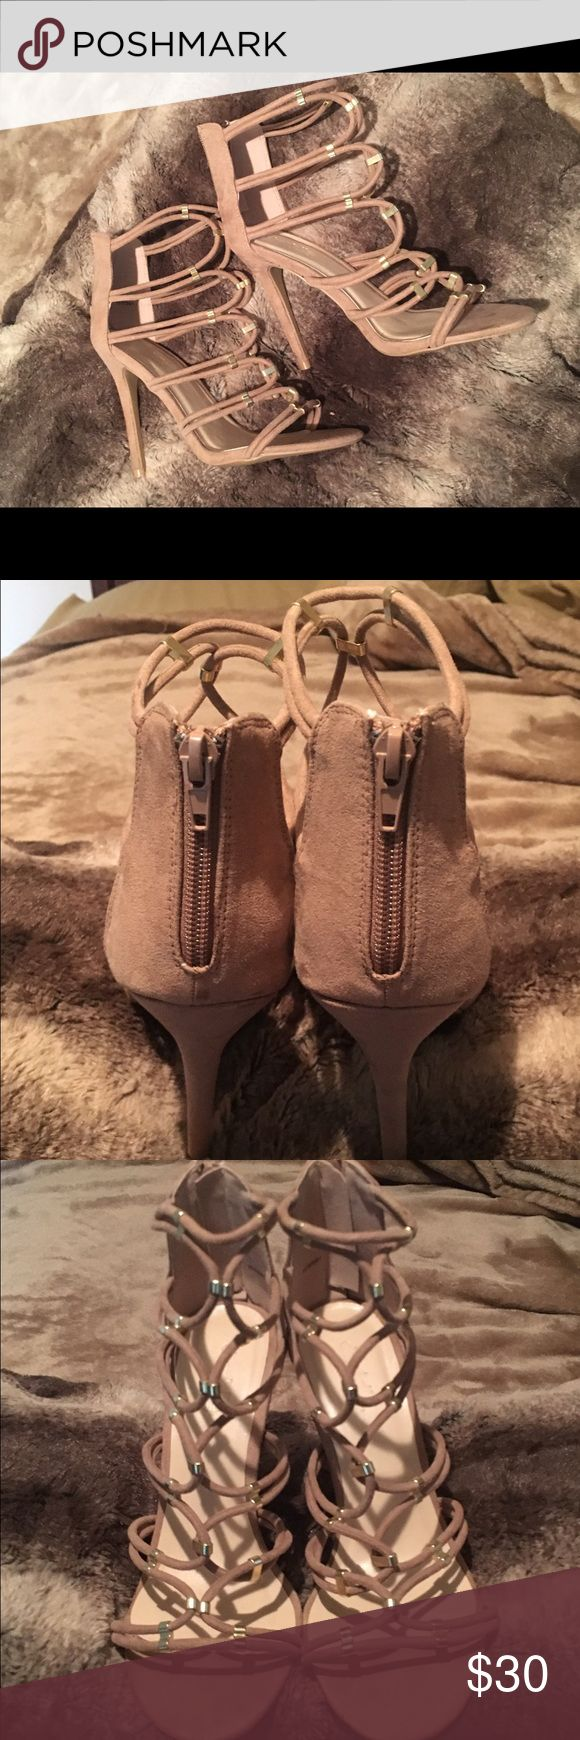 Nude Charlotte Russe heels Very dressy nude heels! Worn only once but LOVED them. I bought them for a party so no longer need. With gold accents and a zip up heel. Open to offers but do not hold or trade! Shoes Heels